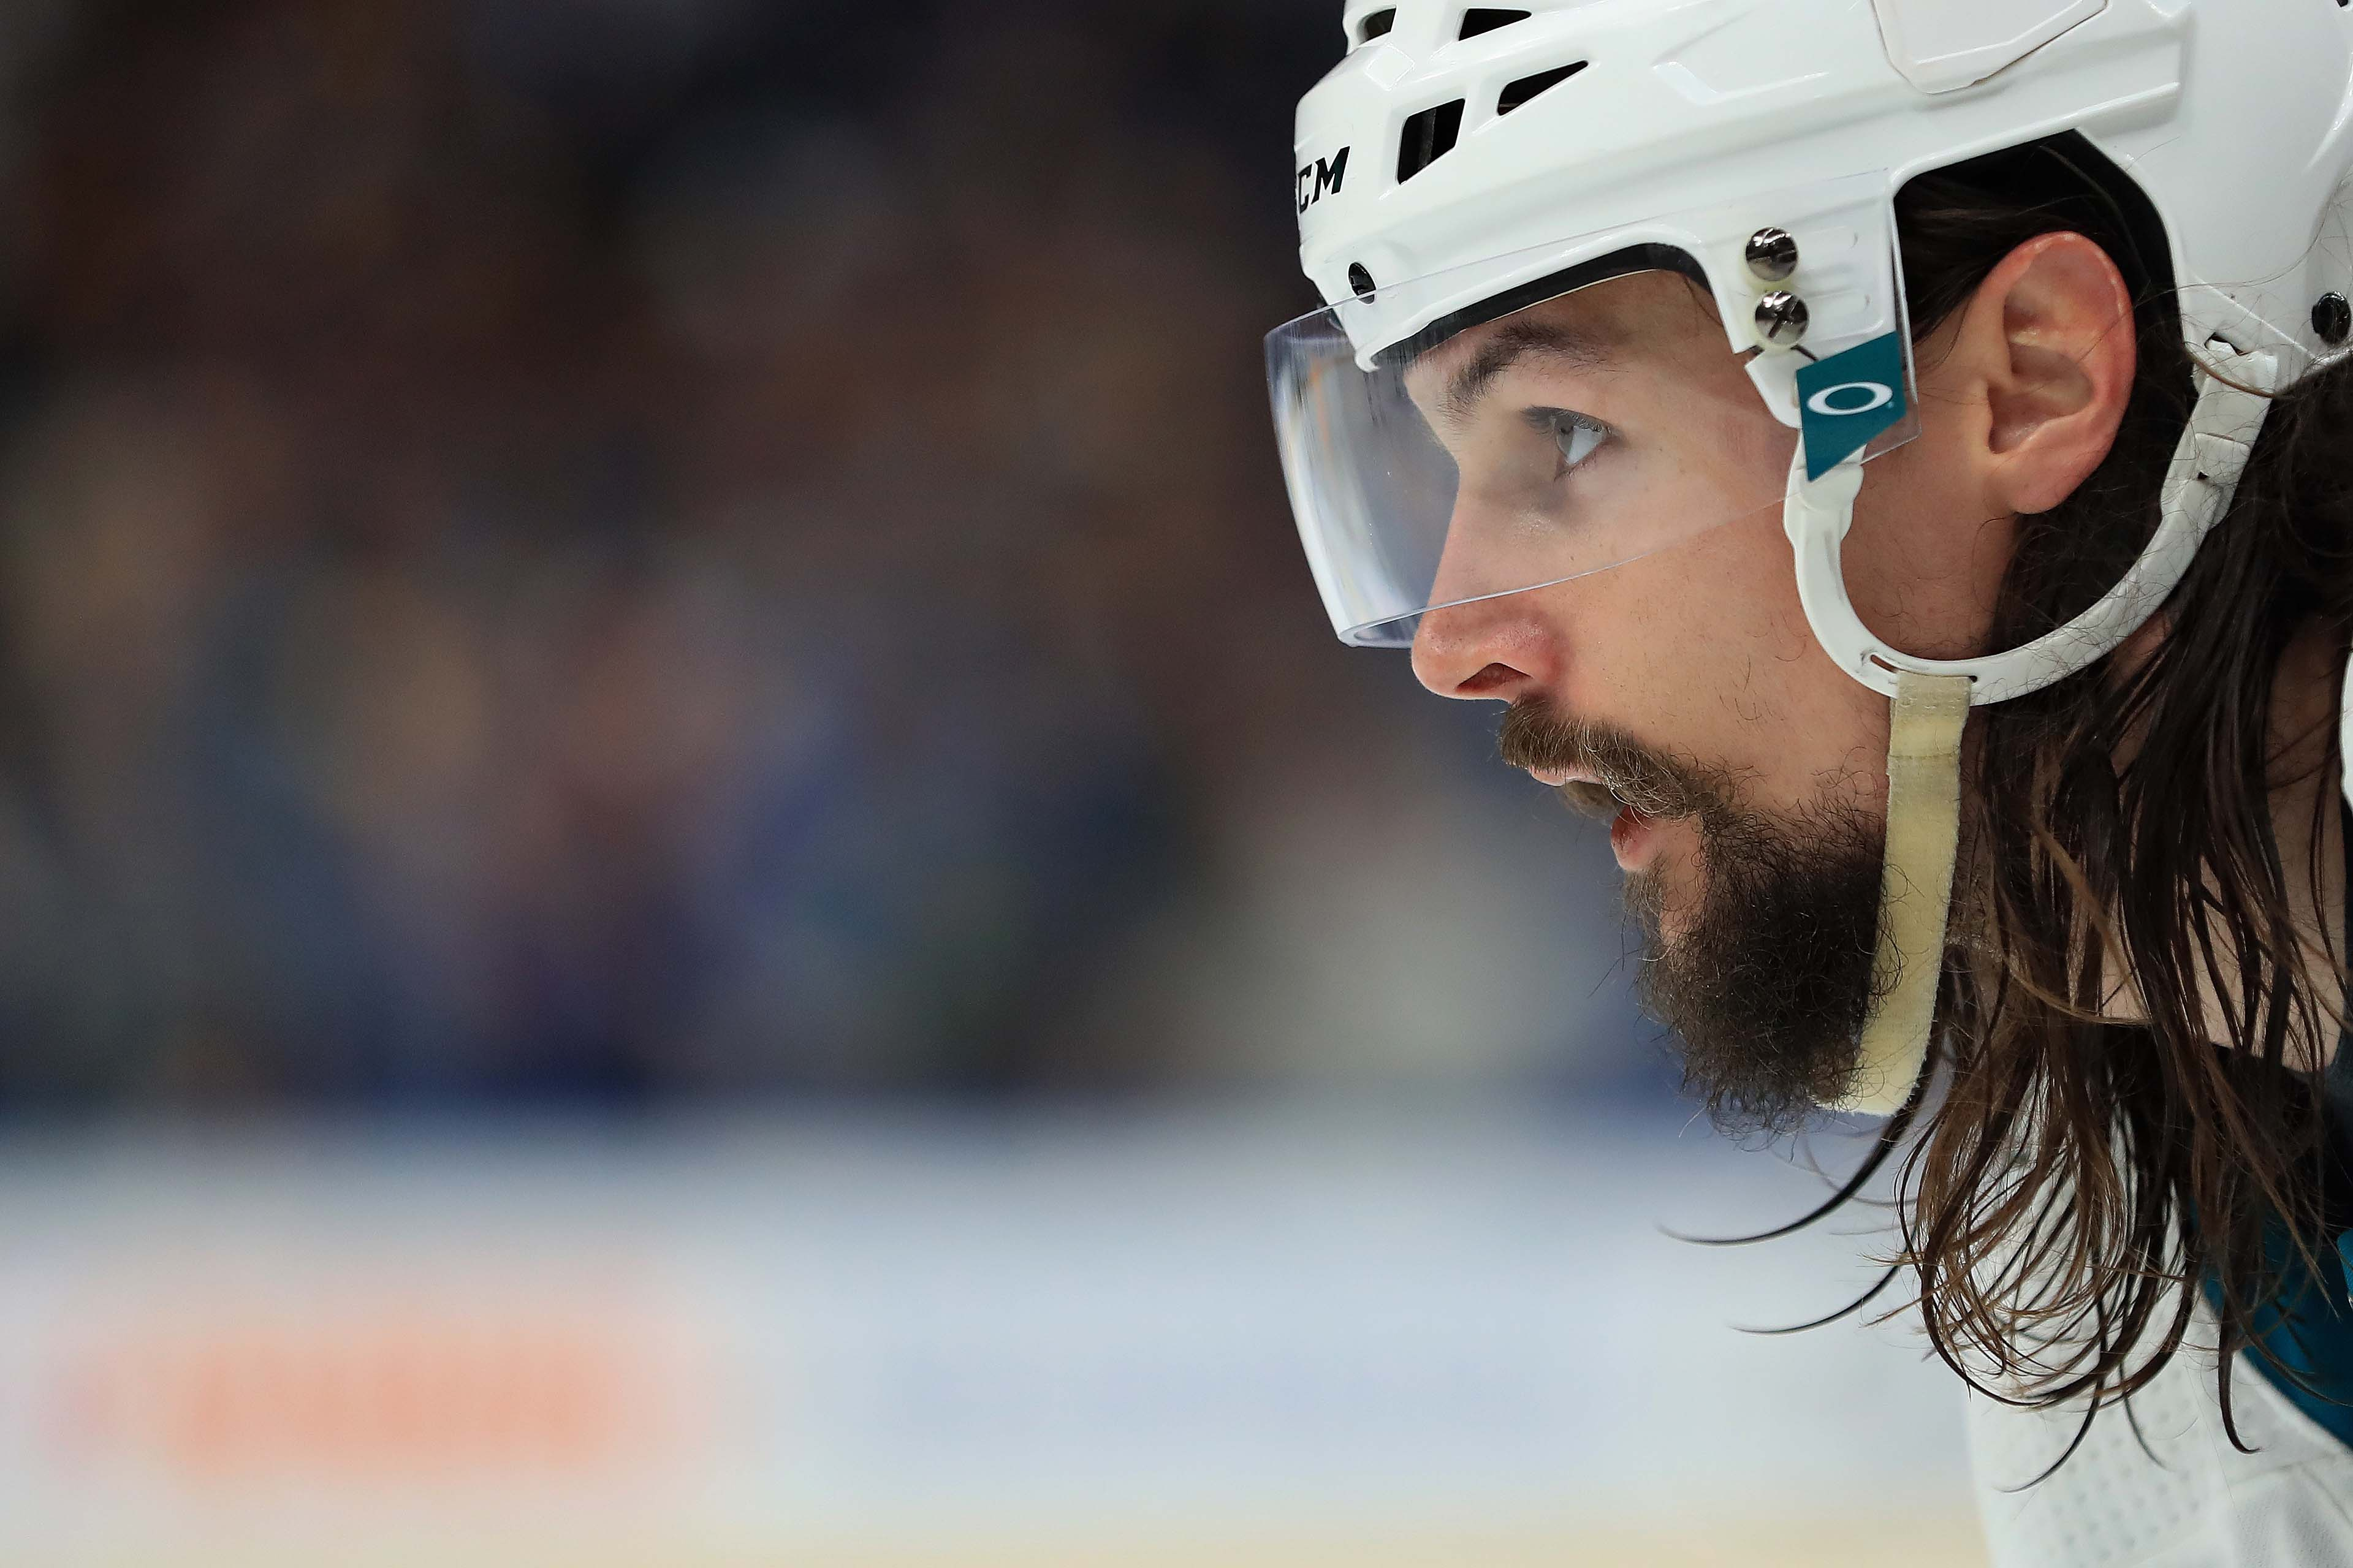 San Jose Sharks defenseman Erik Karlsson (65) awaits the face-off against the St. Louis Blues in the third period during game four of the Western Conference Final of the 2019 Stanley Cup Playoffs at Enterprise Center.